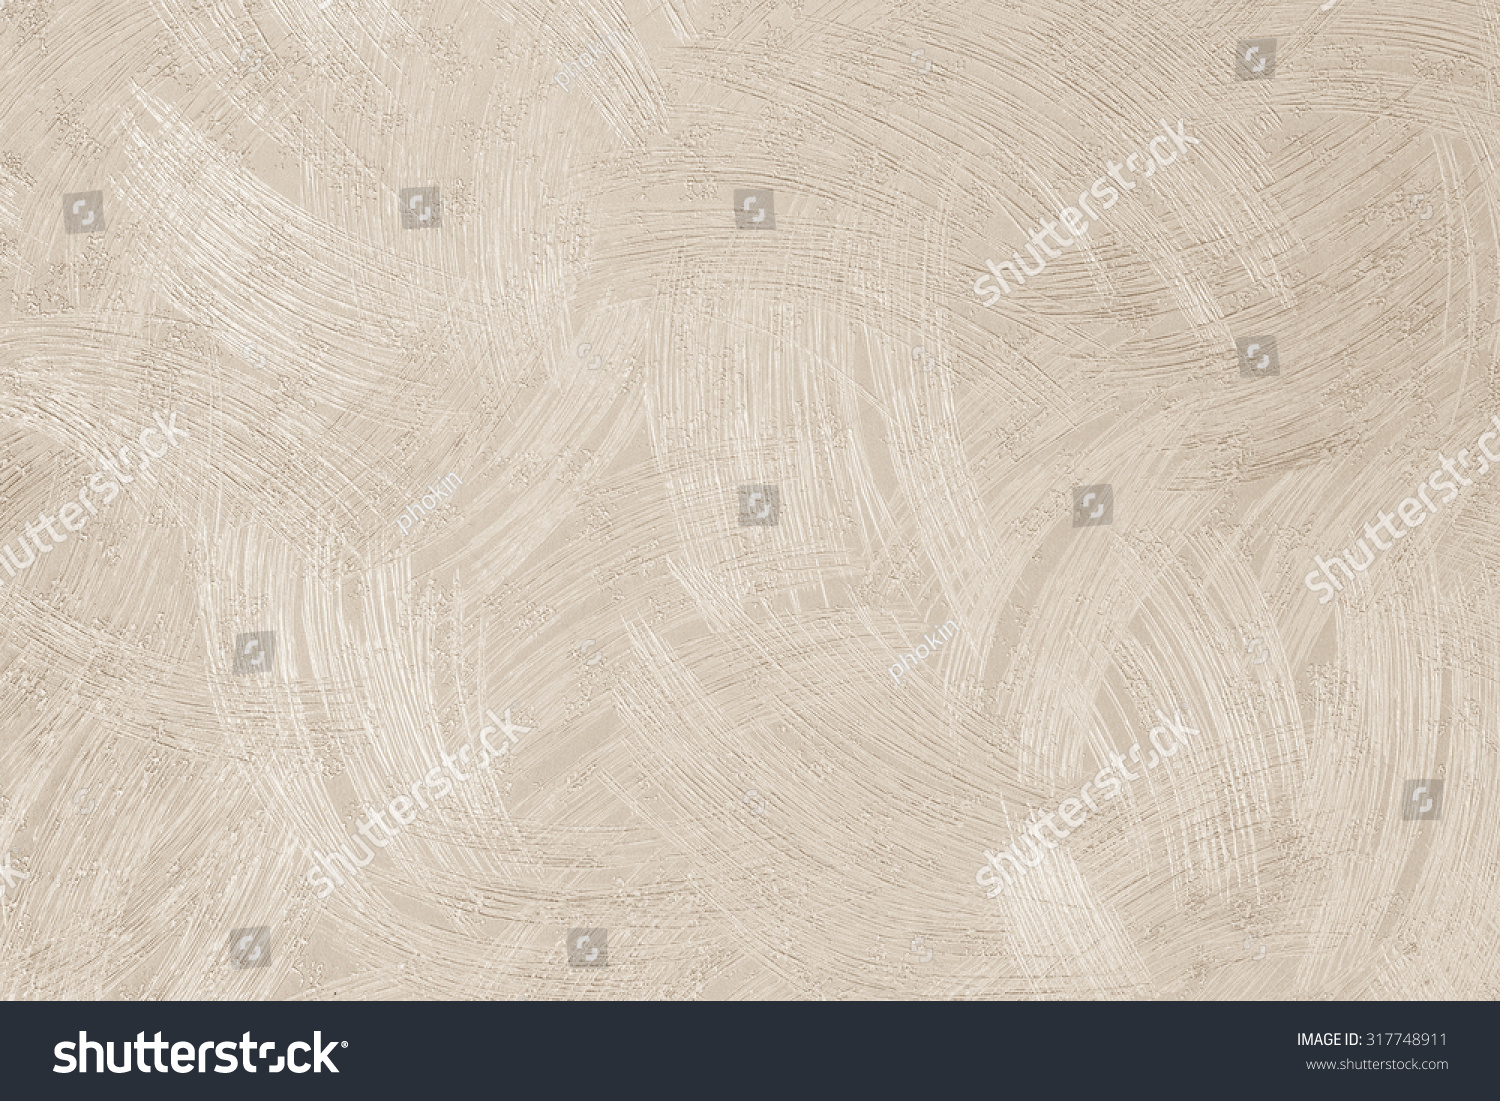 Tone And Texture In Art : Wallpaper texture background light sepia toned stock photo